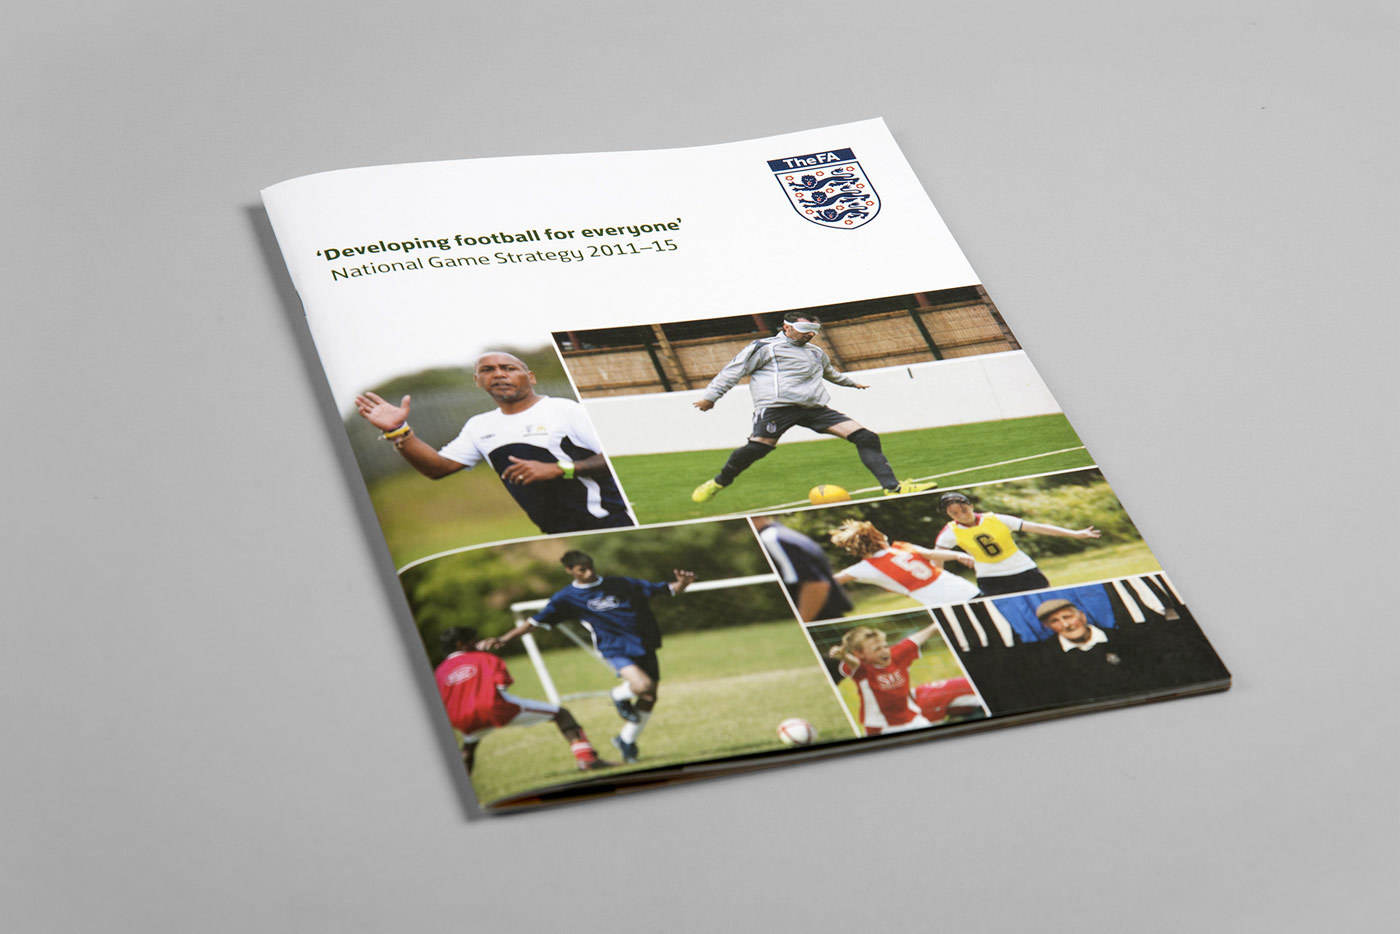 The Fa National Game Strategy Design Booklet Print Cover